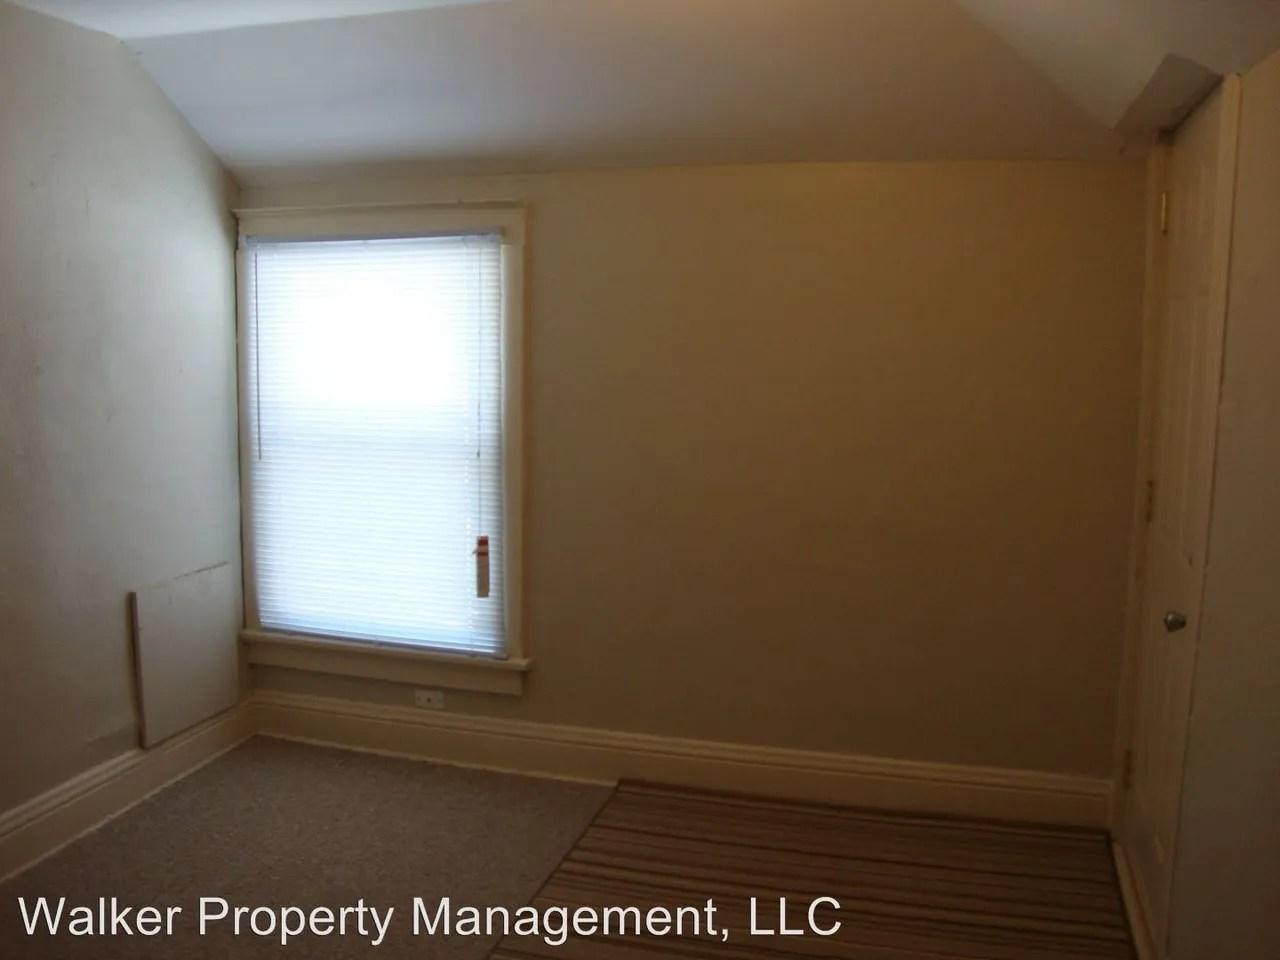 Garage Builders Janesville Wi 369 Wilson Ave Janesville Wi 53548 2 Bedroom Apartment For Rent